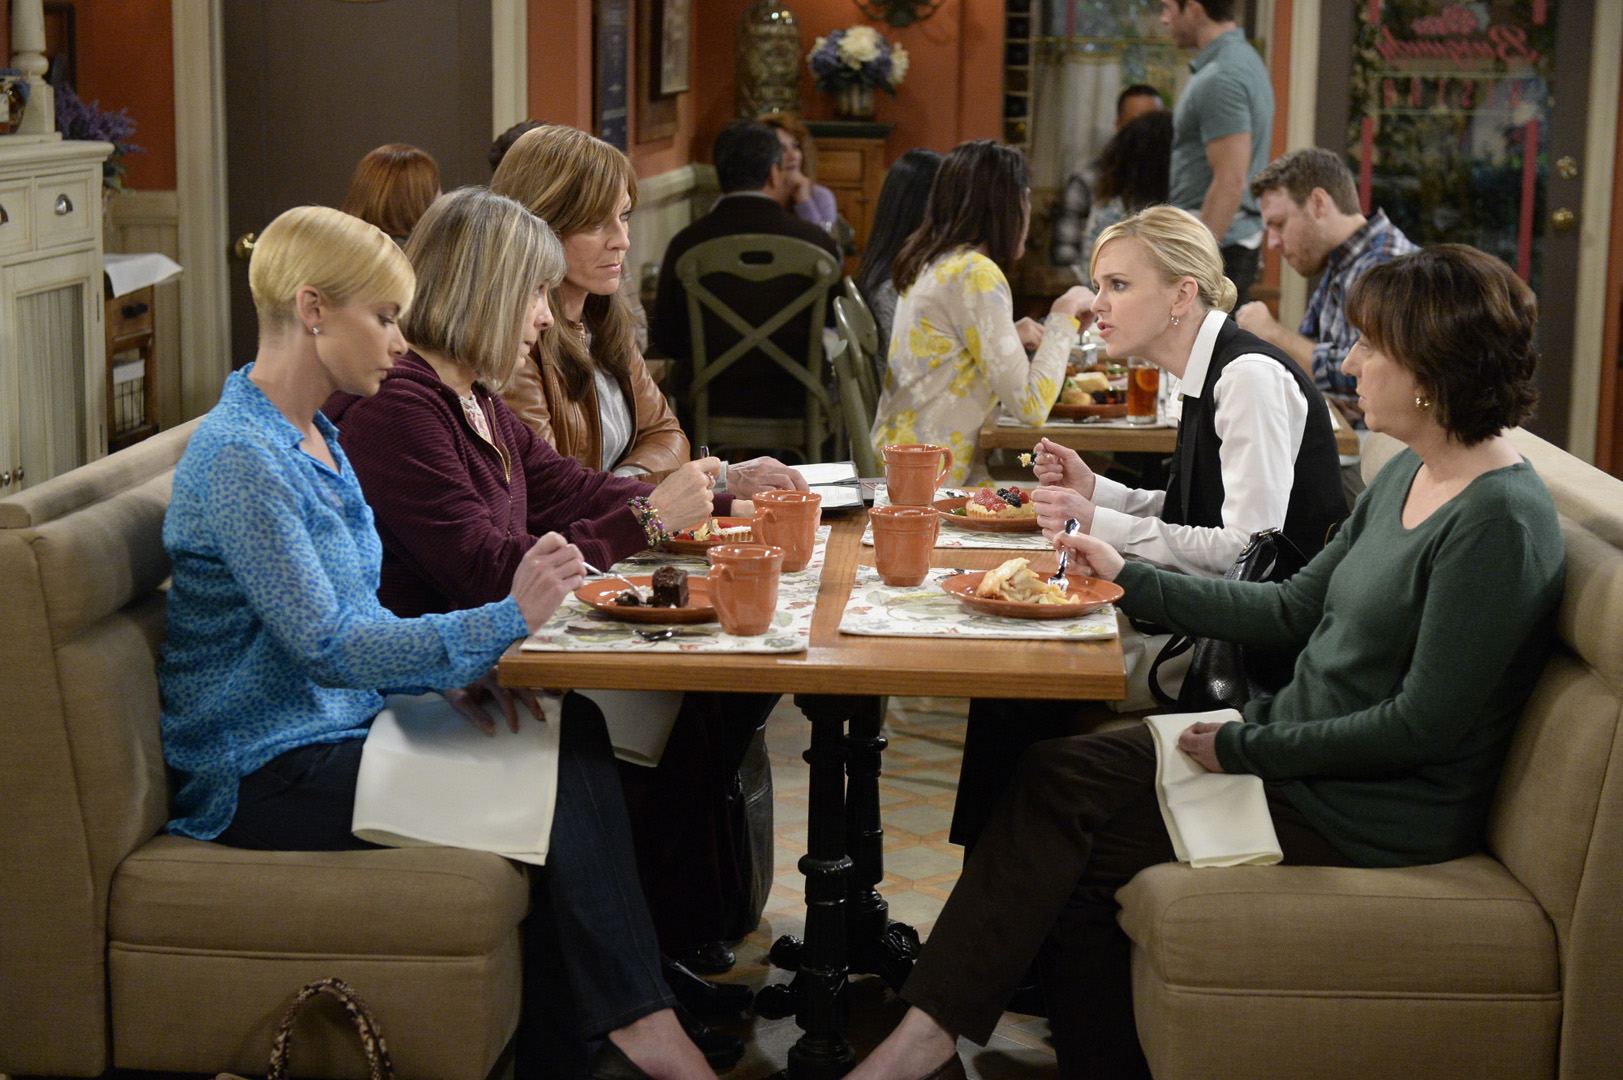 The ladies discuss Jodi's boyfriend, Travis, showing up to their A.A. meeting.